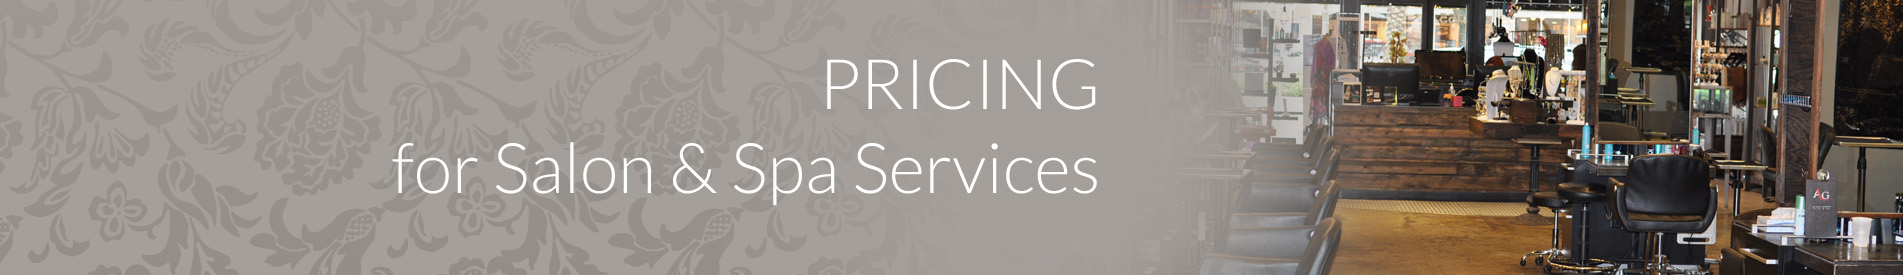 Avant Garde Hair Salon Spa Services Pricing